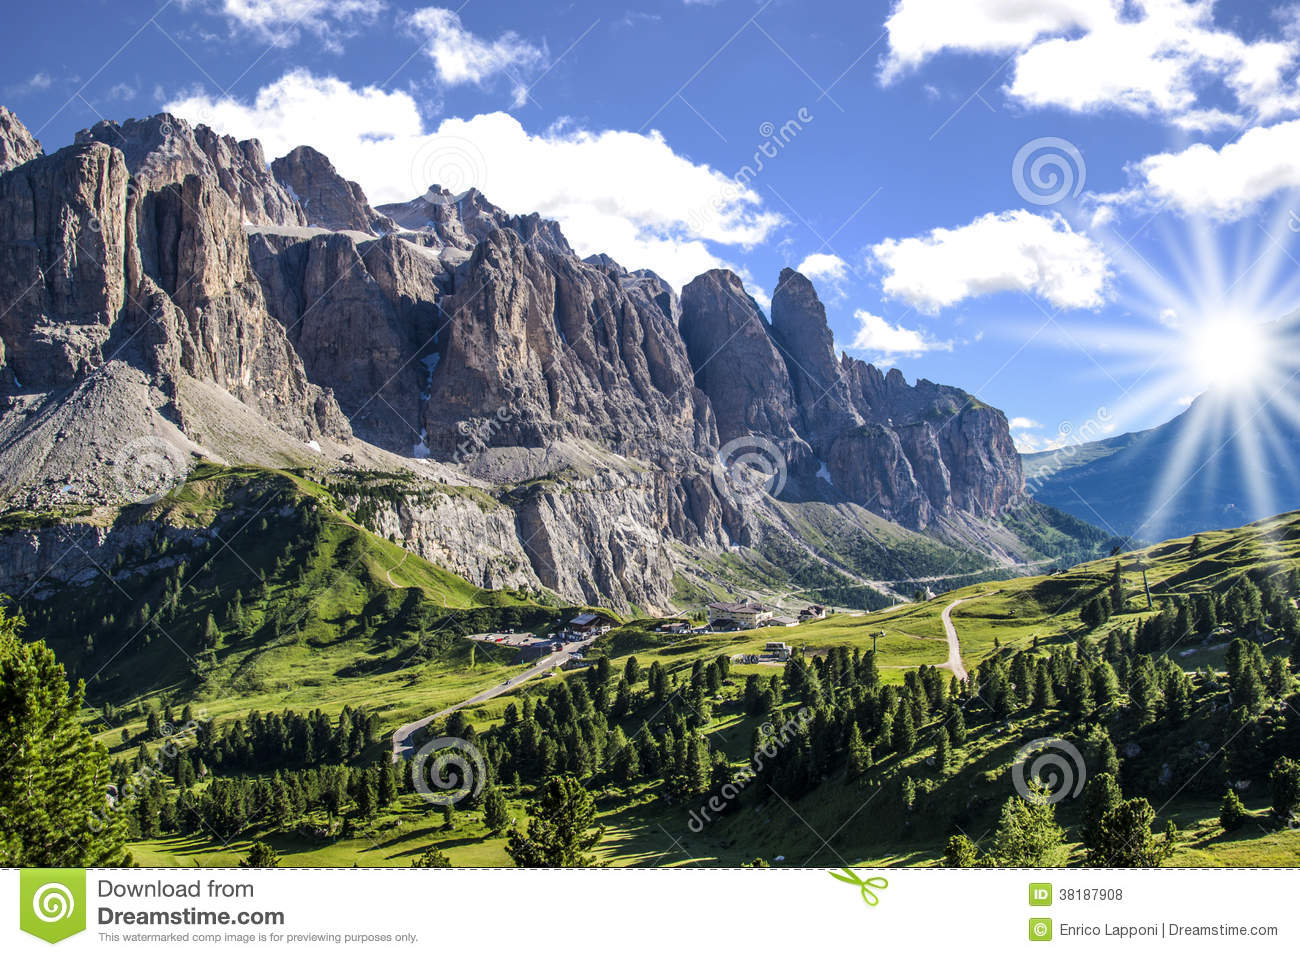 587216 further View category additionally 399694 in addition Page 01 furthermore Royalty Free Stock Photos Gardena Pass Image38187908. on 3d animals gif